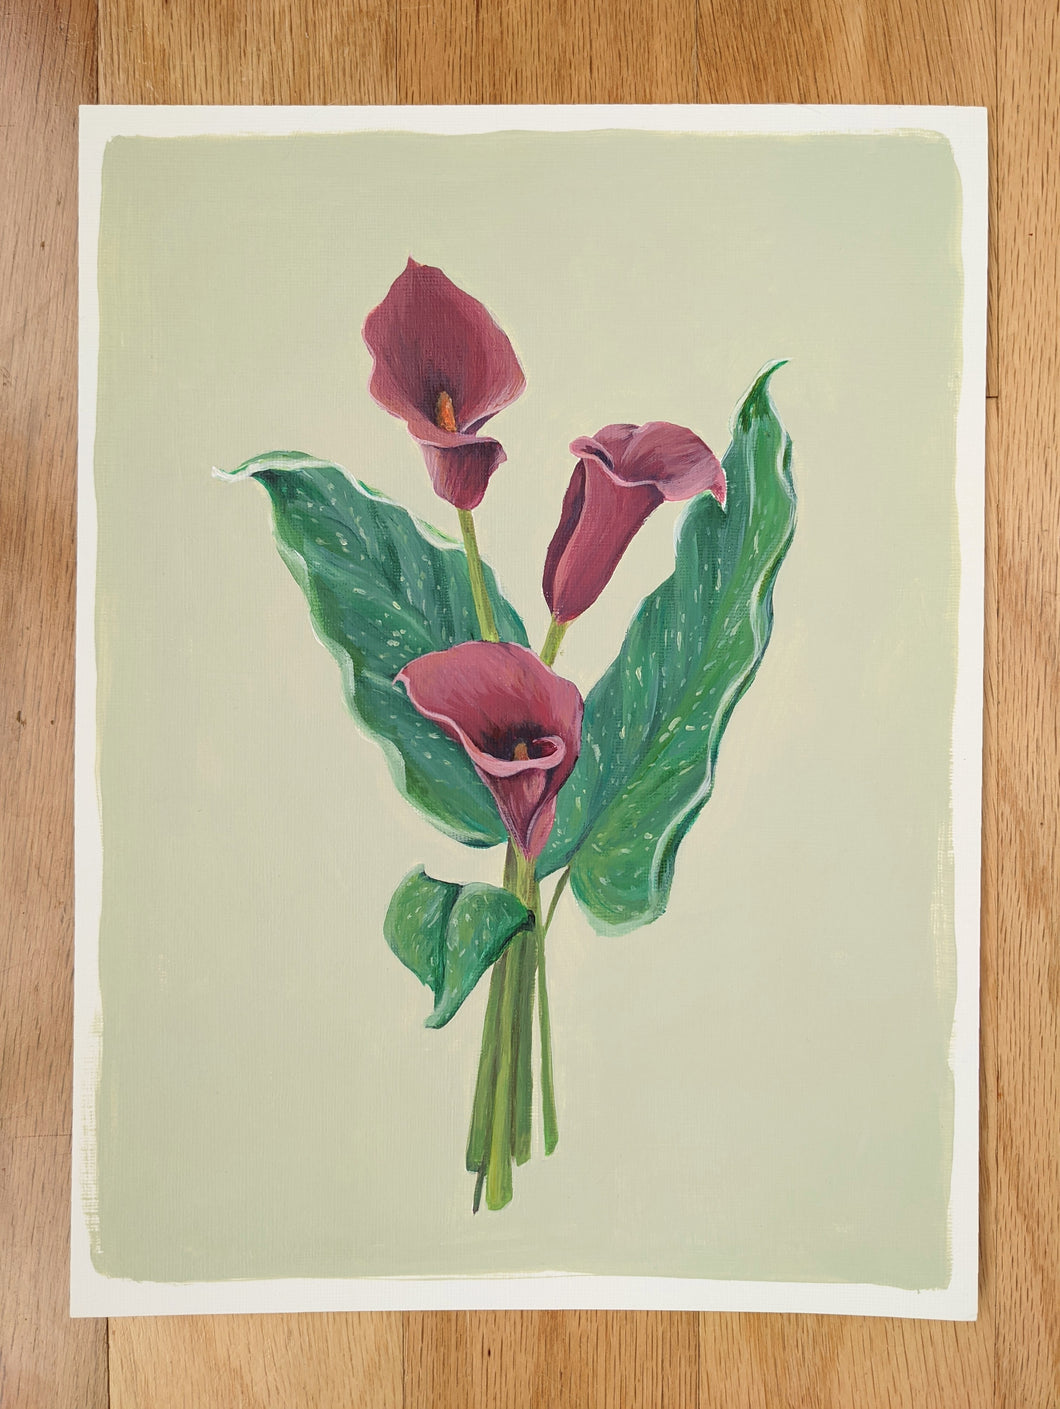 Day 14 Calla lily | 9X12 inch original painting